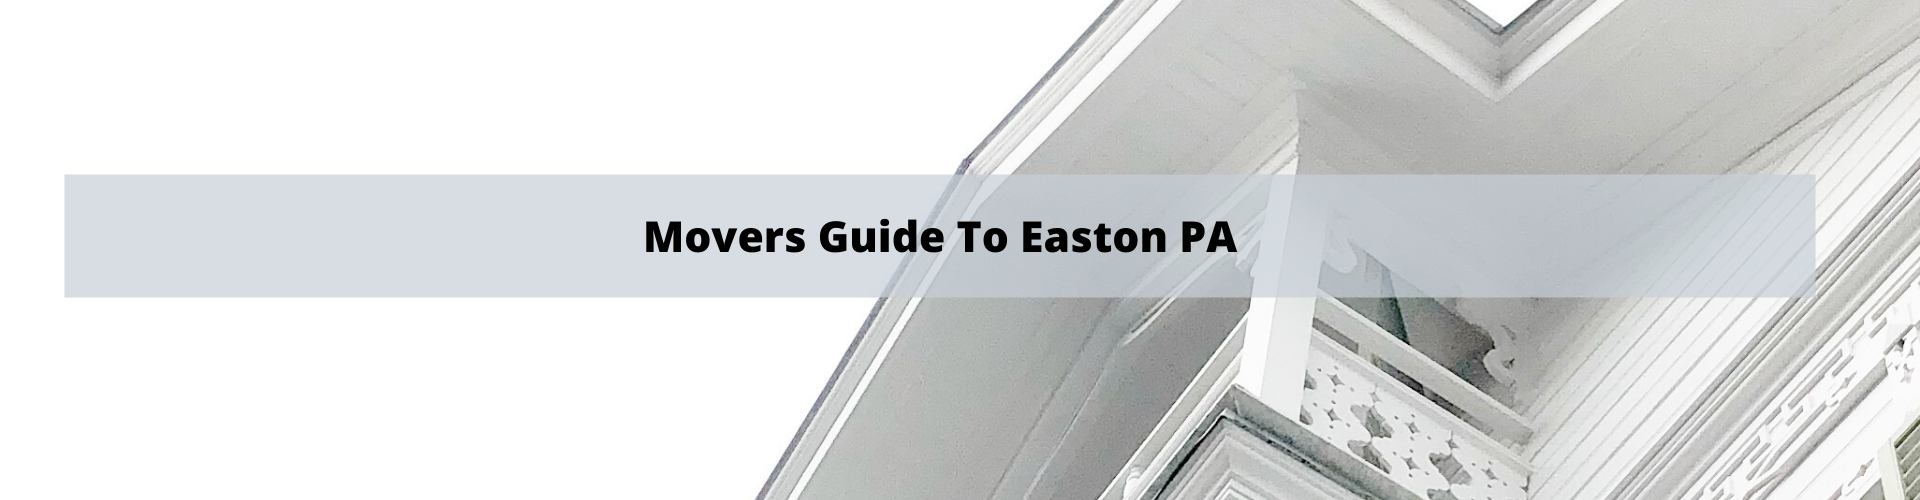 Movers Guide to Easton PA